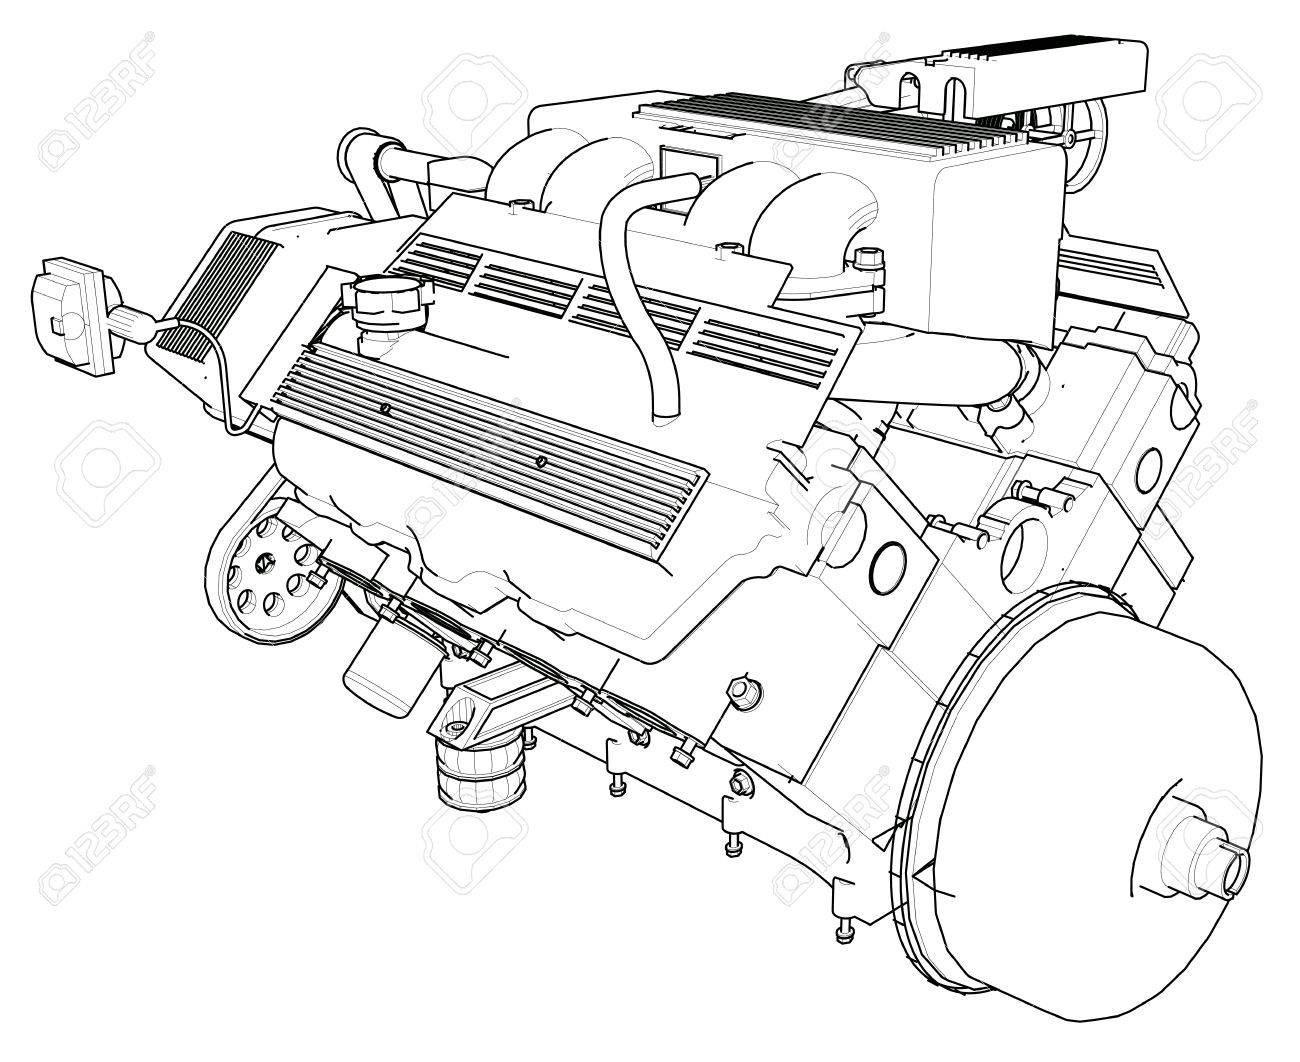 Charming car engine illustration contemporary electrical circuit